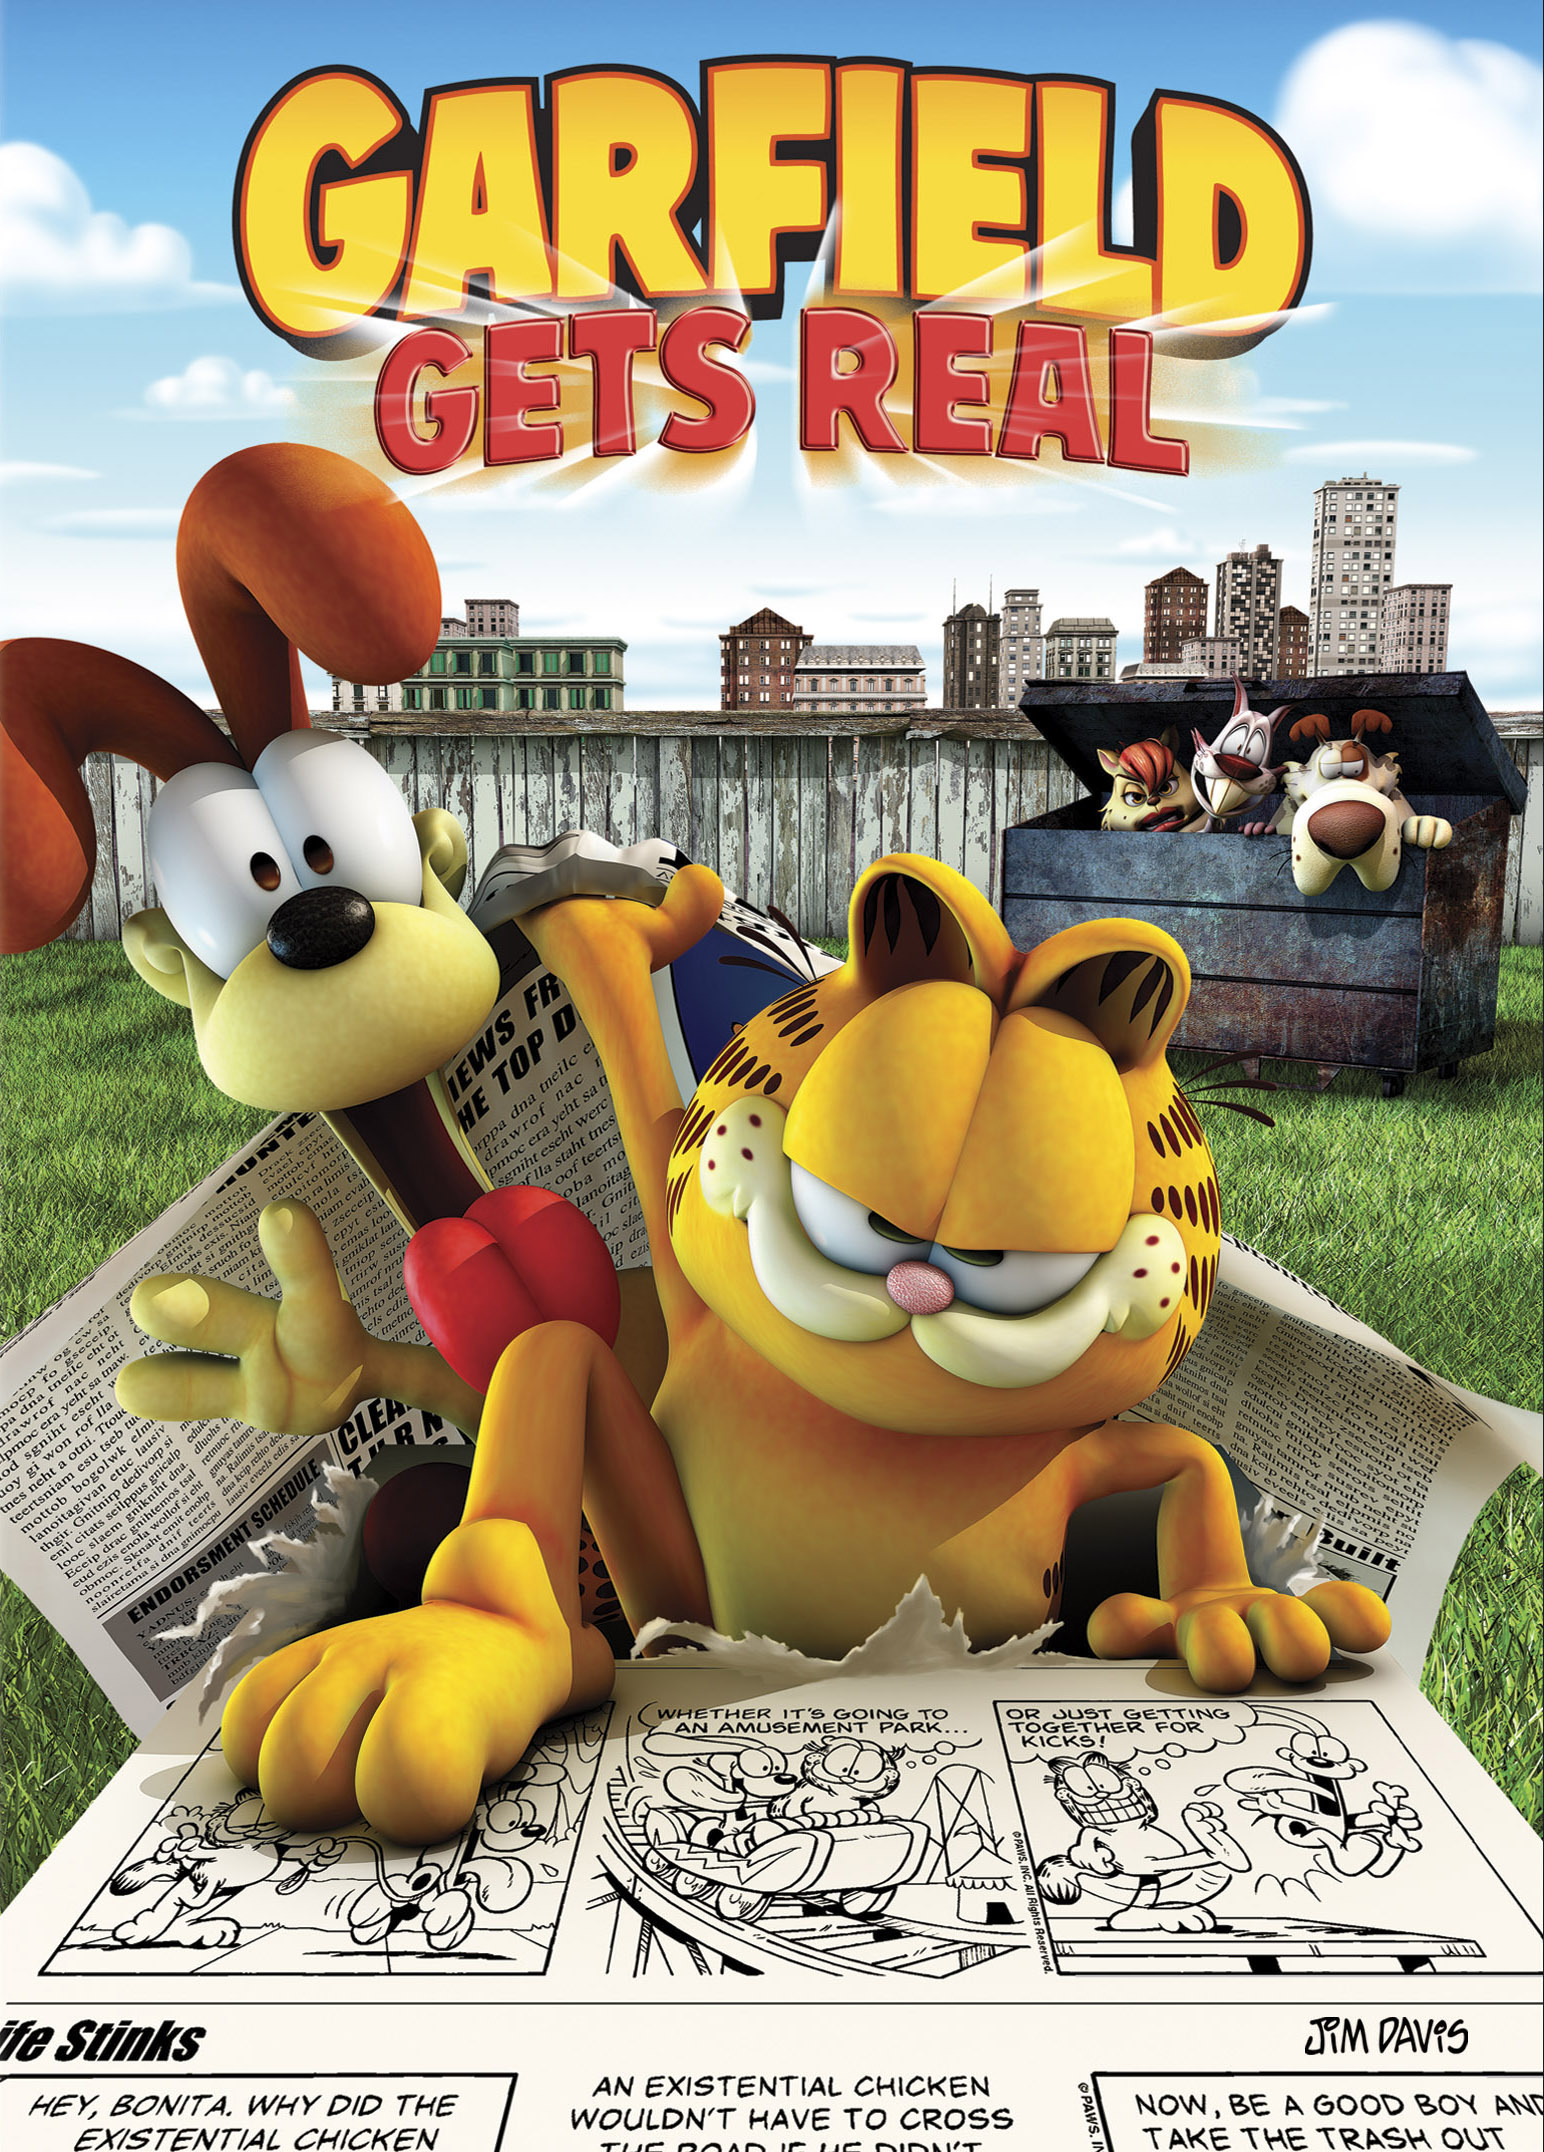 Archivo:Garfield Gets Real (2007) .jpg